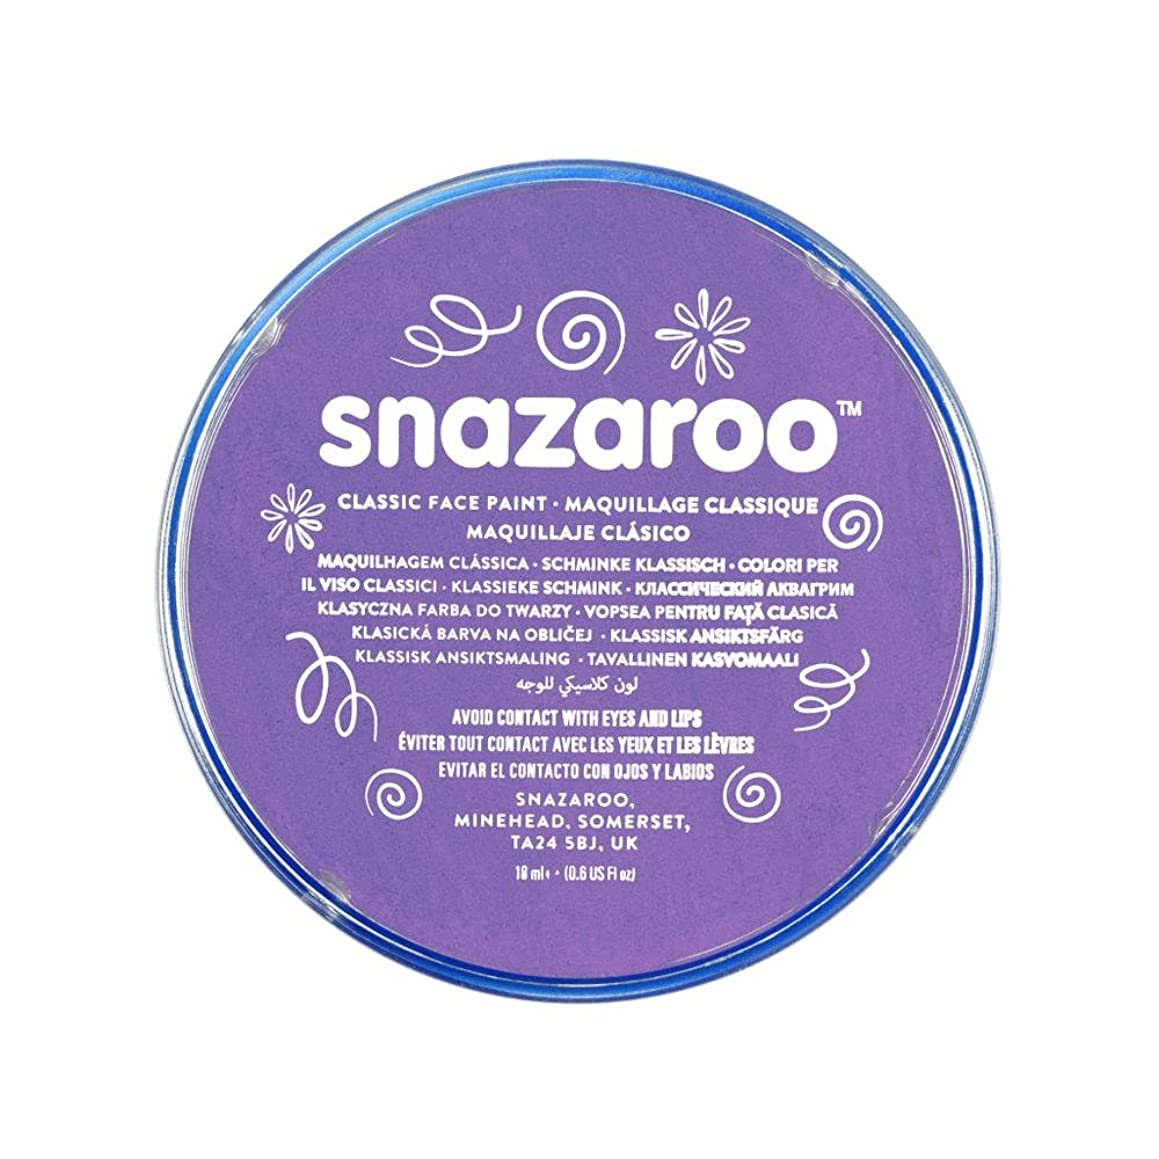 Snazaroo Classic Face Paint, 18ml, Lilac